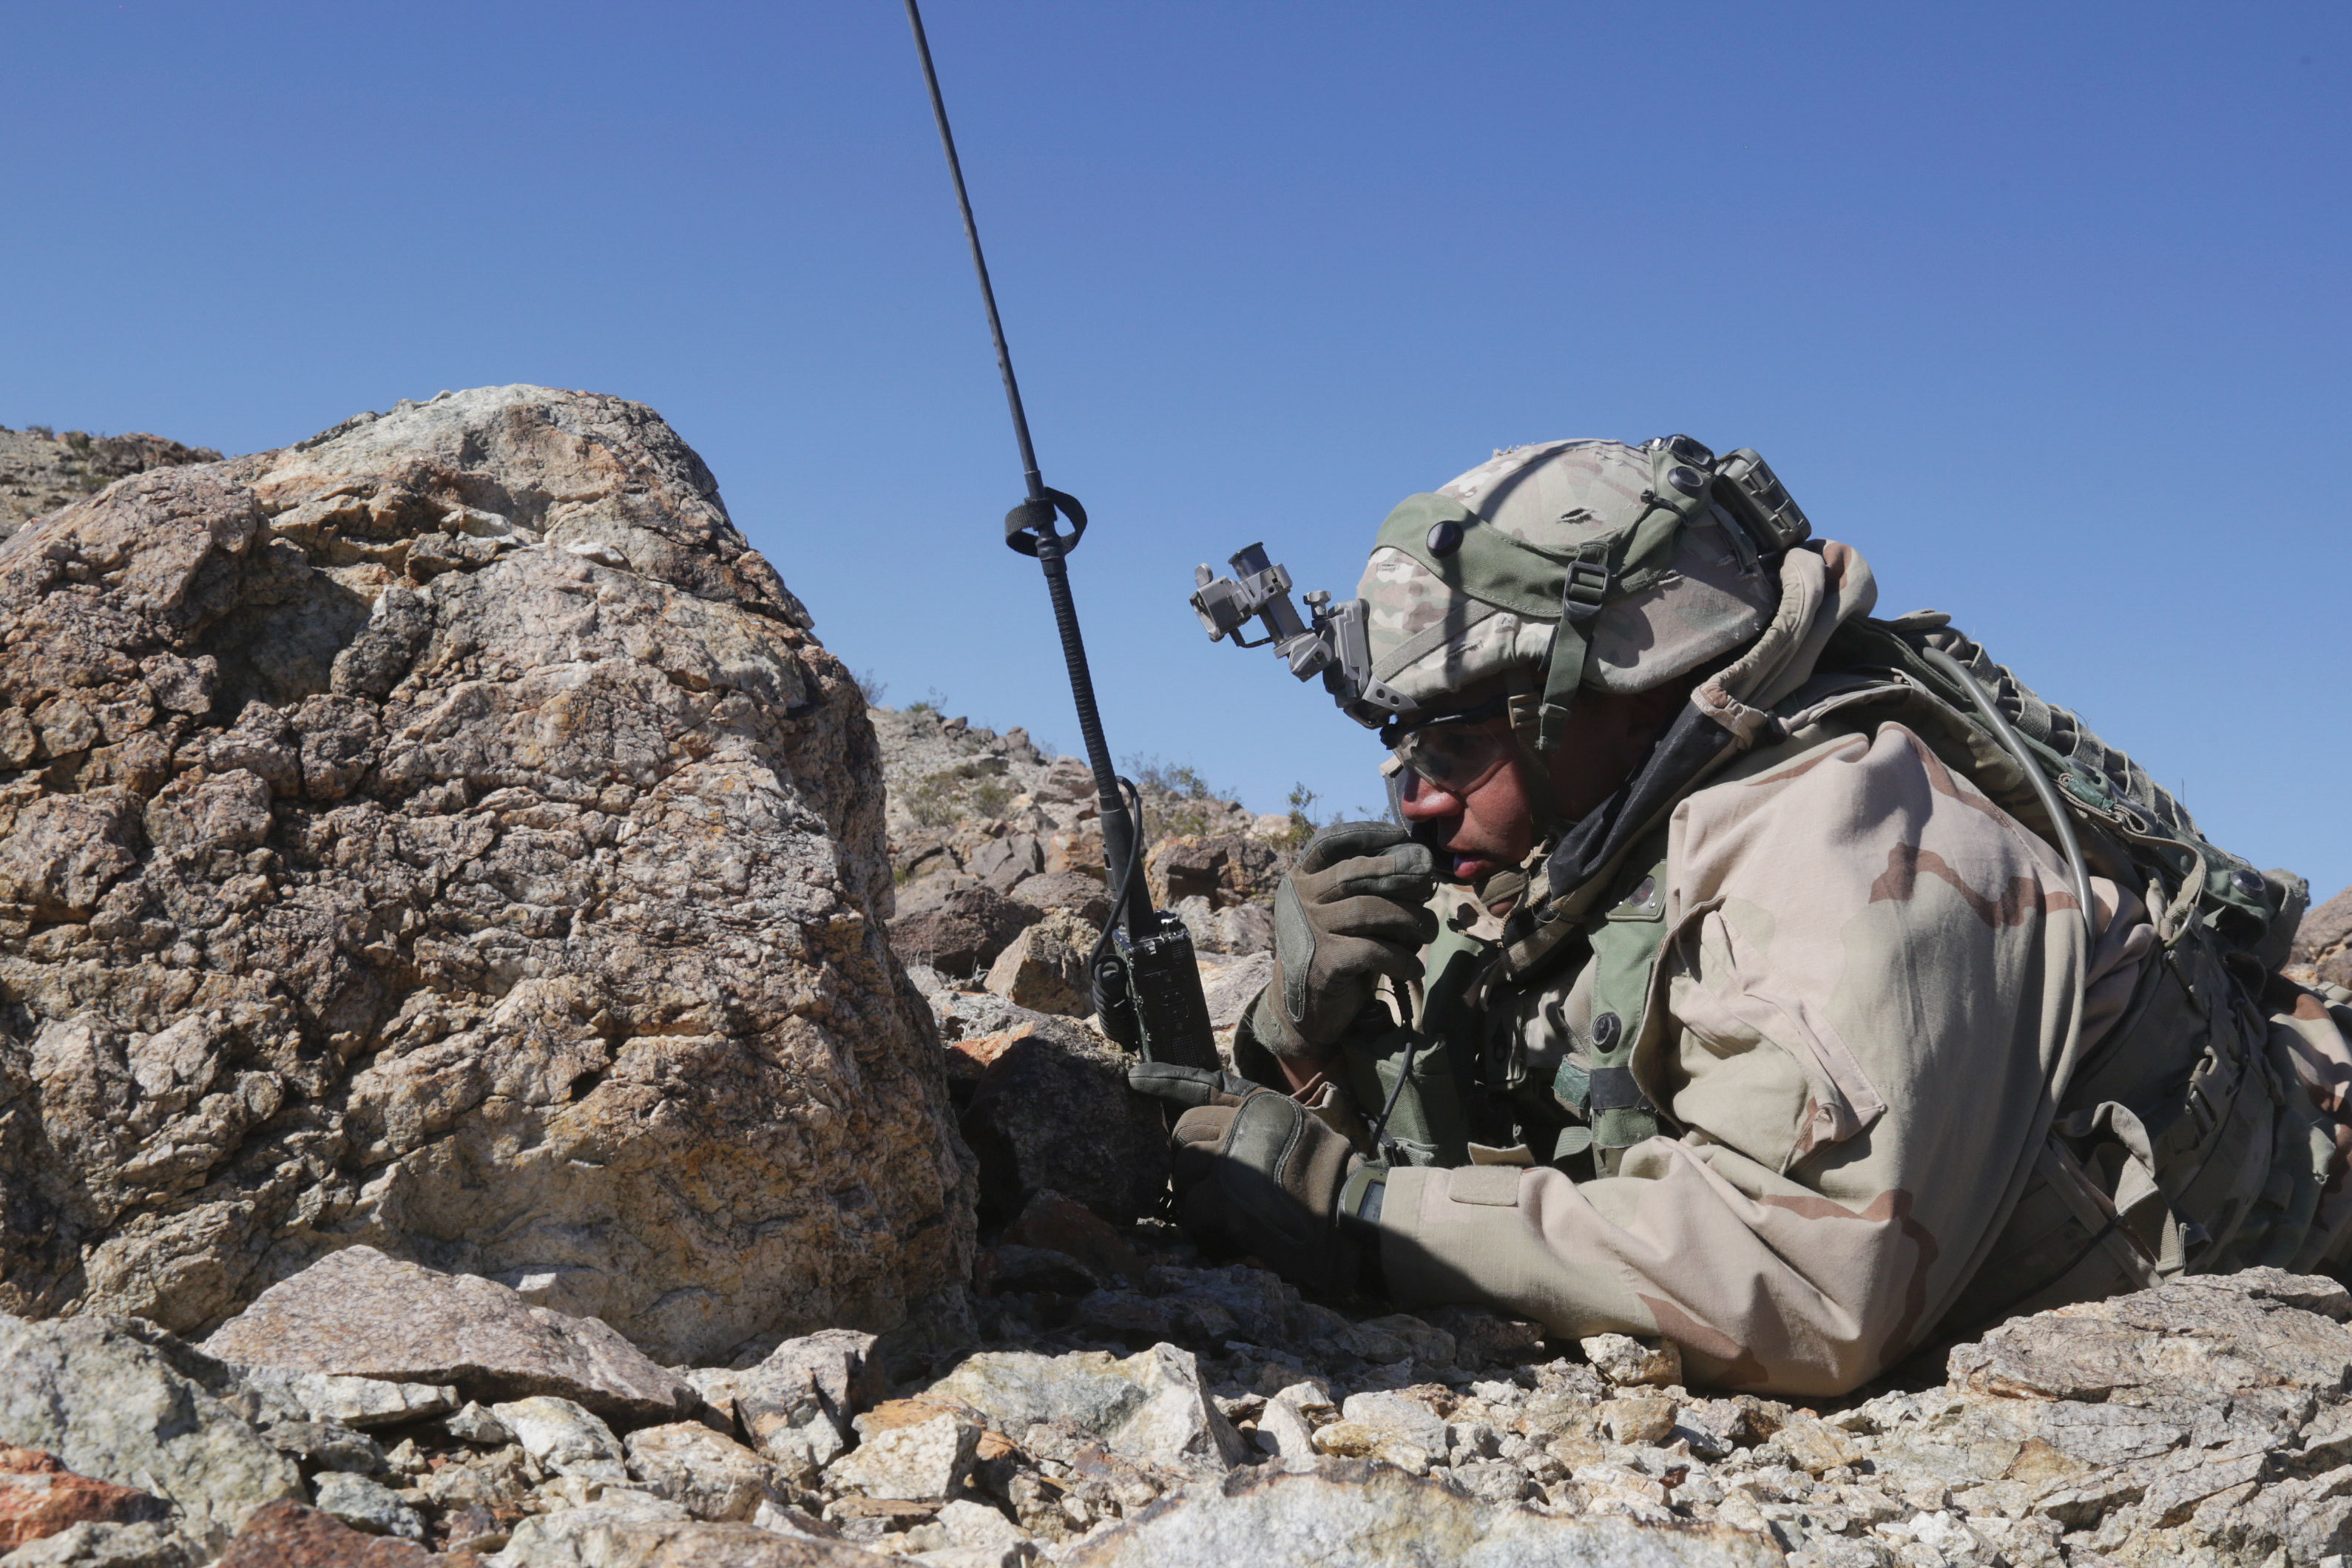 A U.S. Soldier assigned to 3rd Squadron, 3rd Cavalry Regiment, reports enemy positions during Decisive Action Rotation 18-04 at the National Training Center in Fort Irwin, Calif., Feb. 17, 2018. (Spc. Daniel Parrott / U.S. Army)